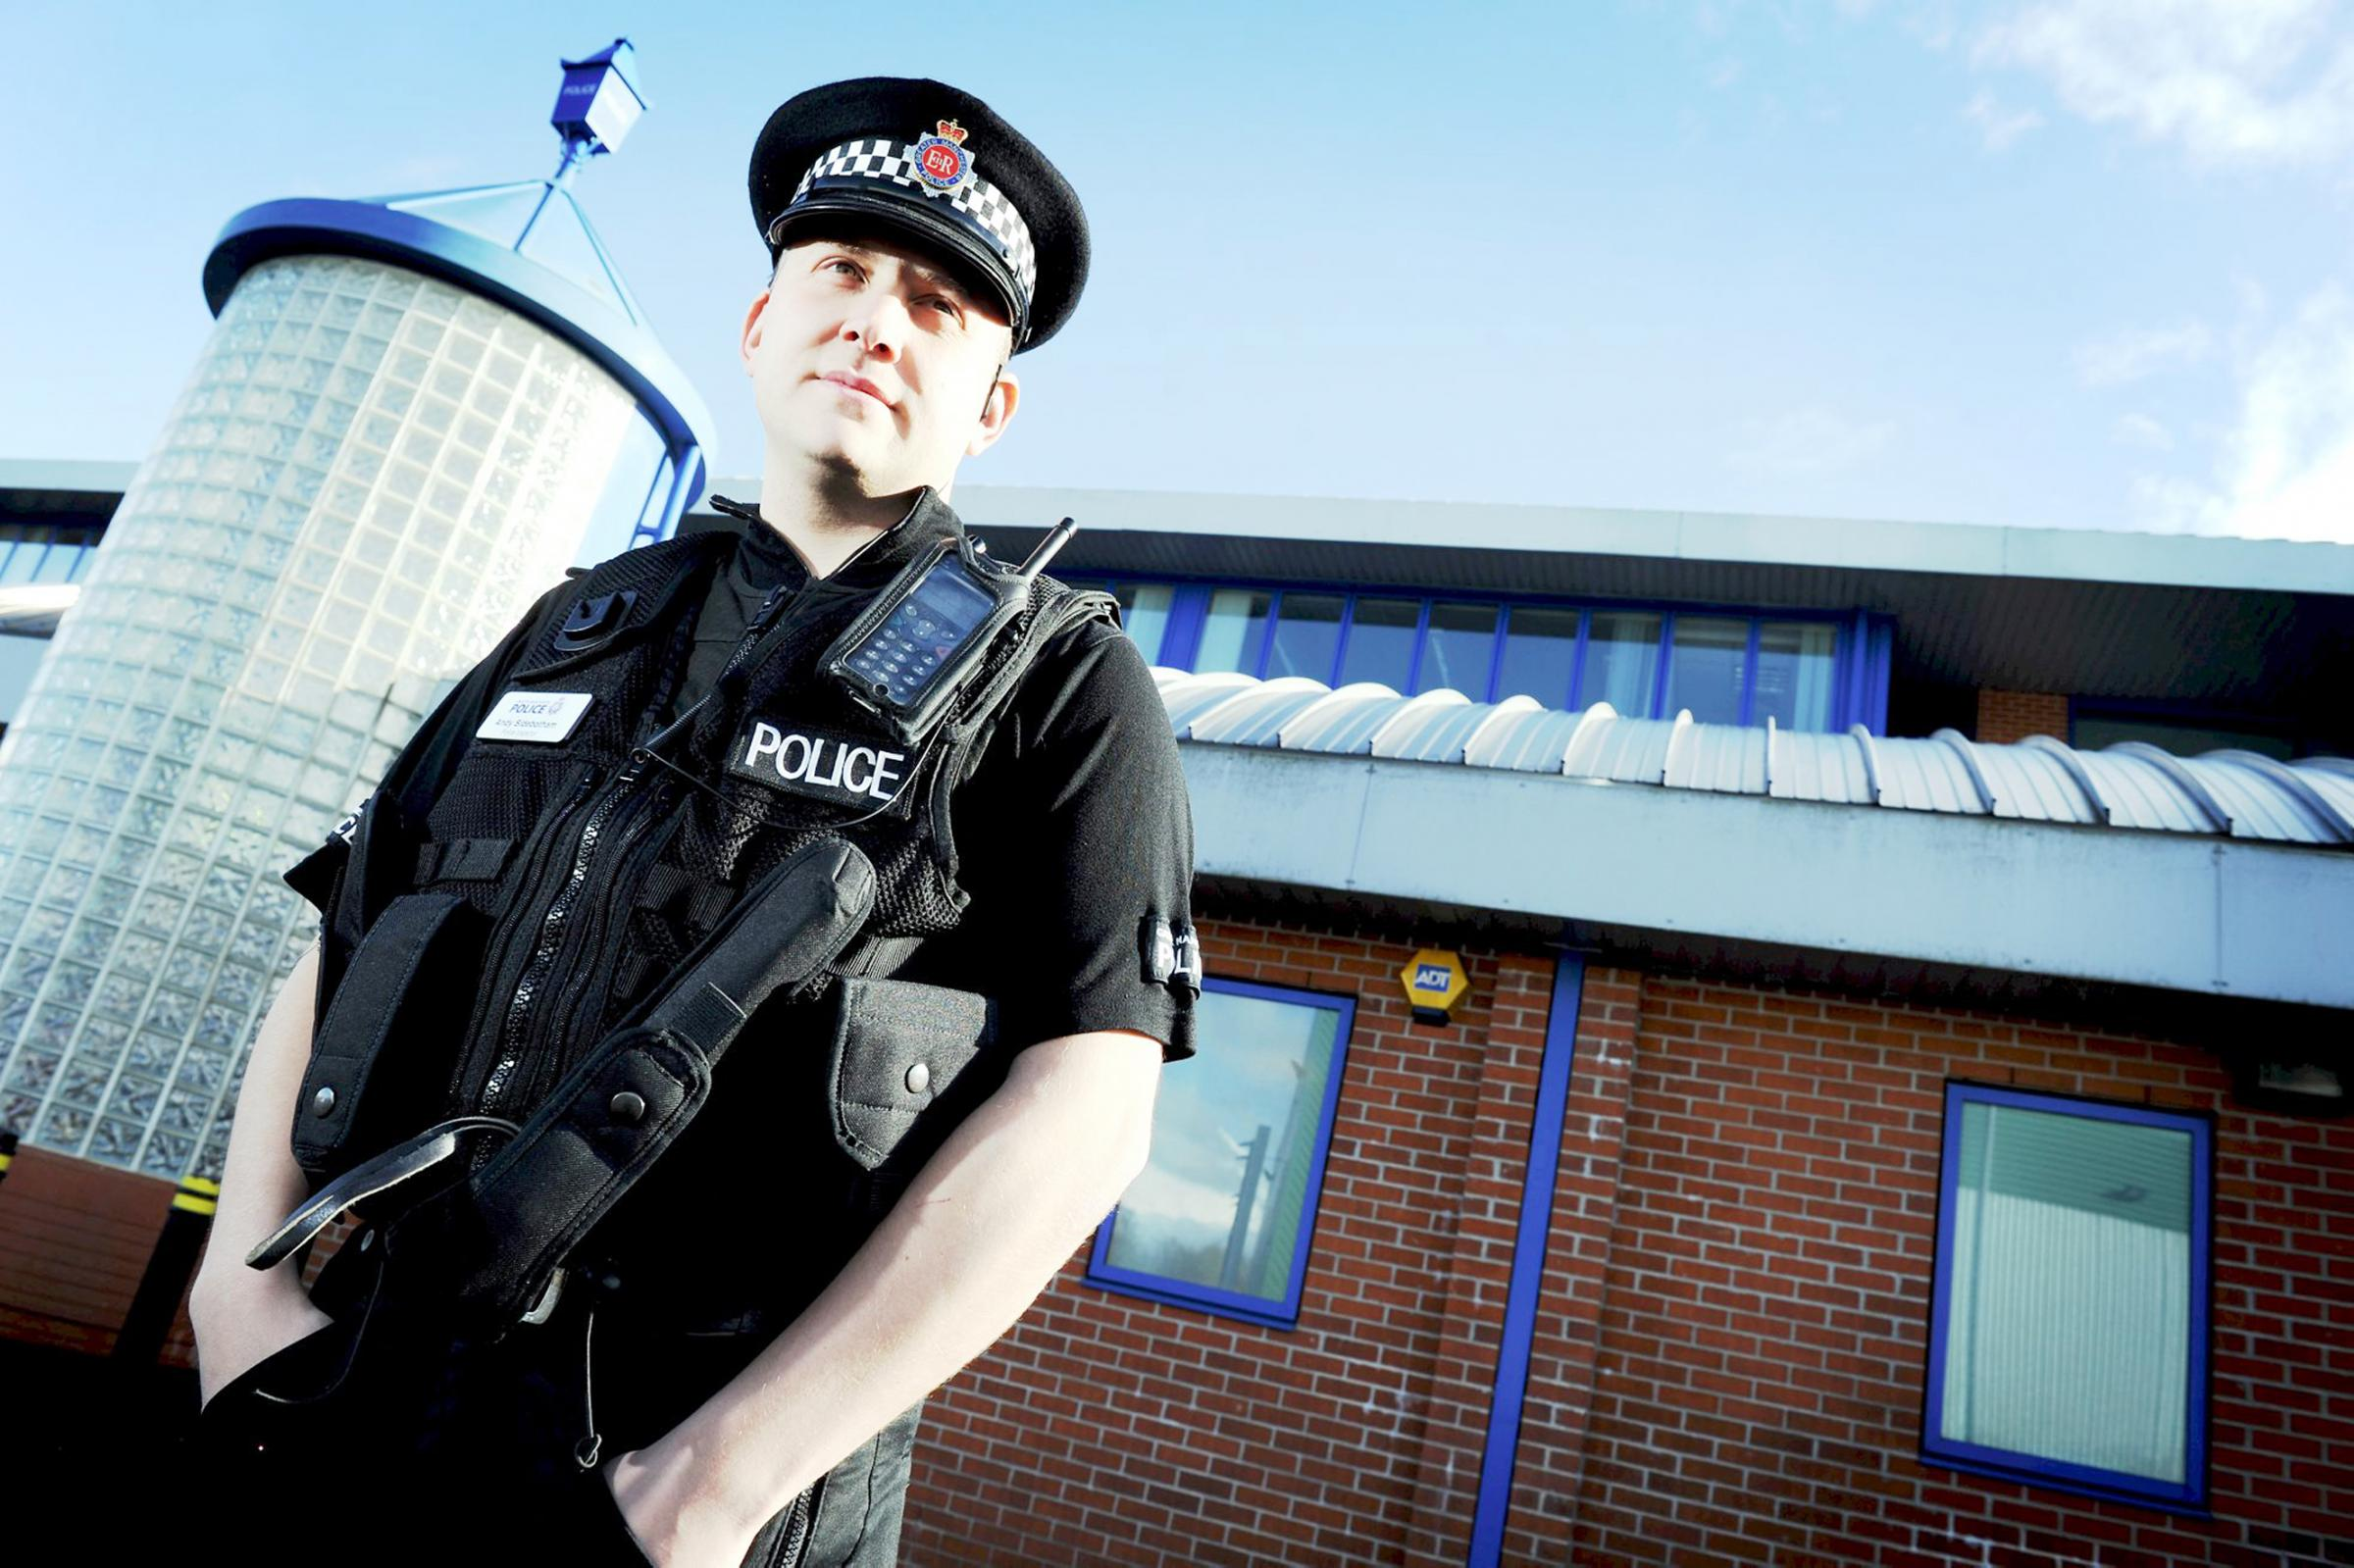 Insp Andy Sidebotham is leaving the Bolton Central Neighbourhood Policing Team for promotion and a role at GMP headquarters